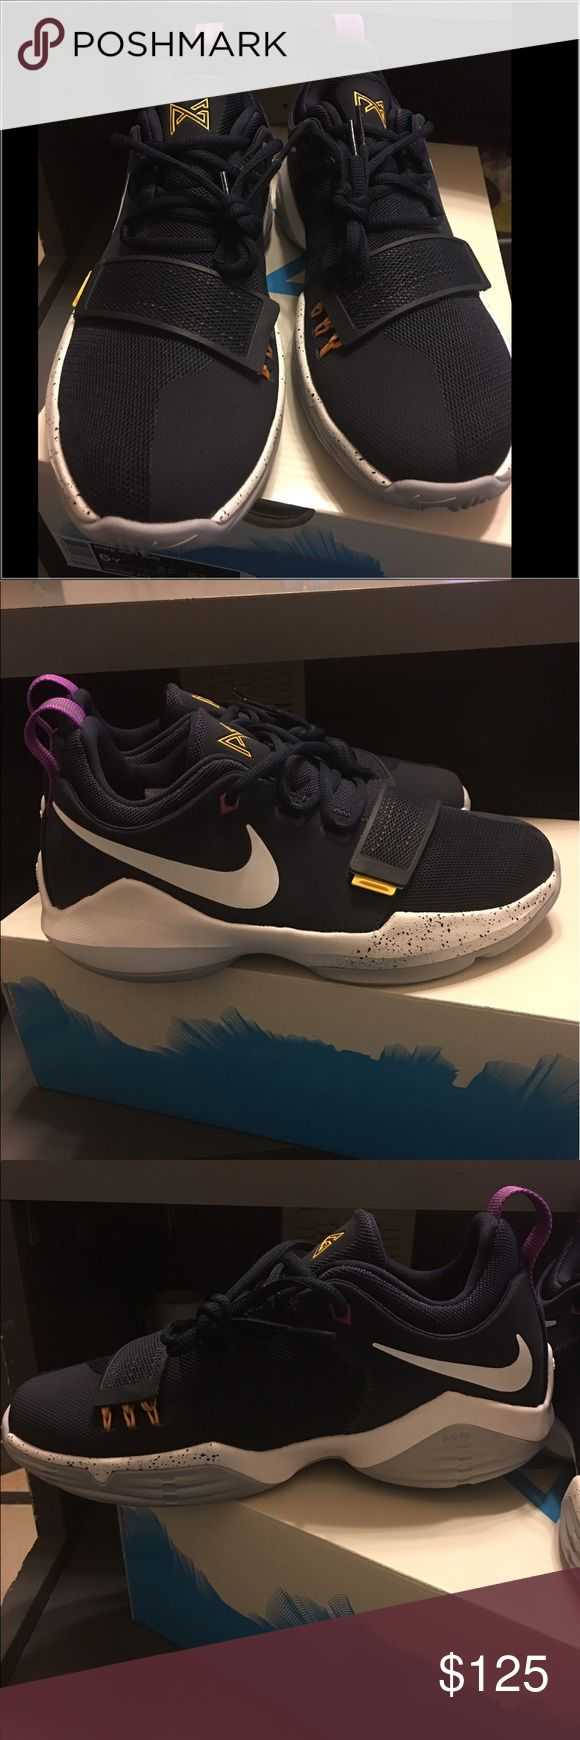 Nike Pg1(shoes) unisex 100% Authentic Nike Pg1 Paul George Ferocity the bait Navy Basketball Shoes..(Unisex).. brand-new tennis shoes never been used or tried on and very new condition with tags and receipt.. smells like mu looks like new it is new.. Nike Shoes Sneakers